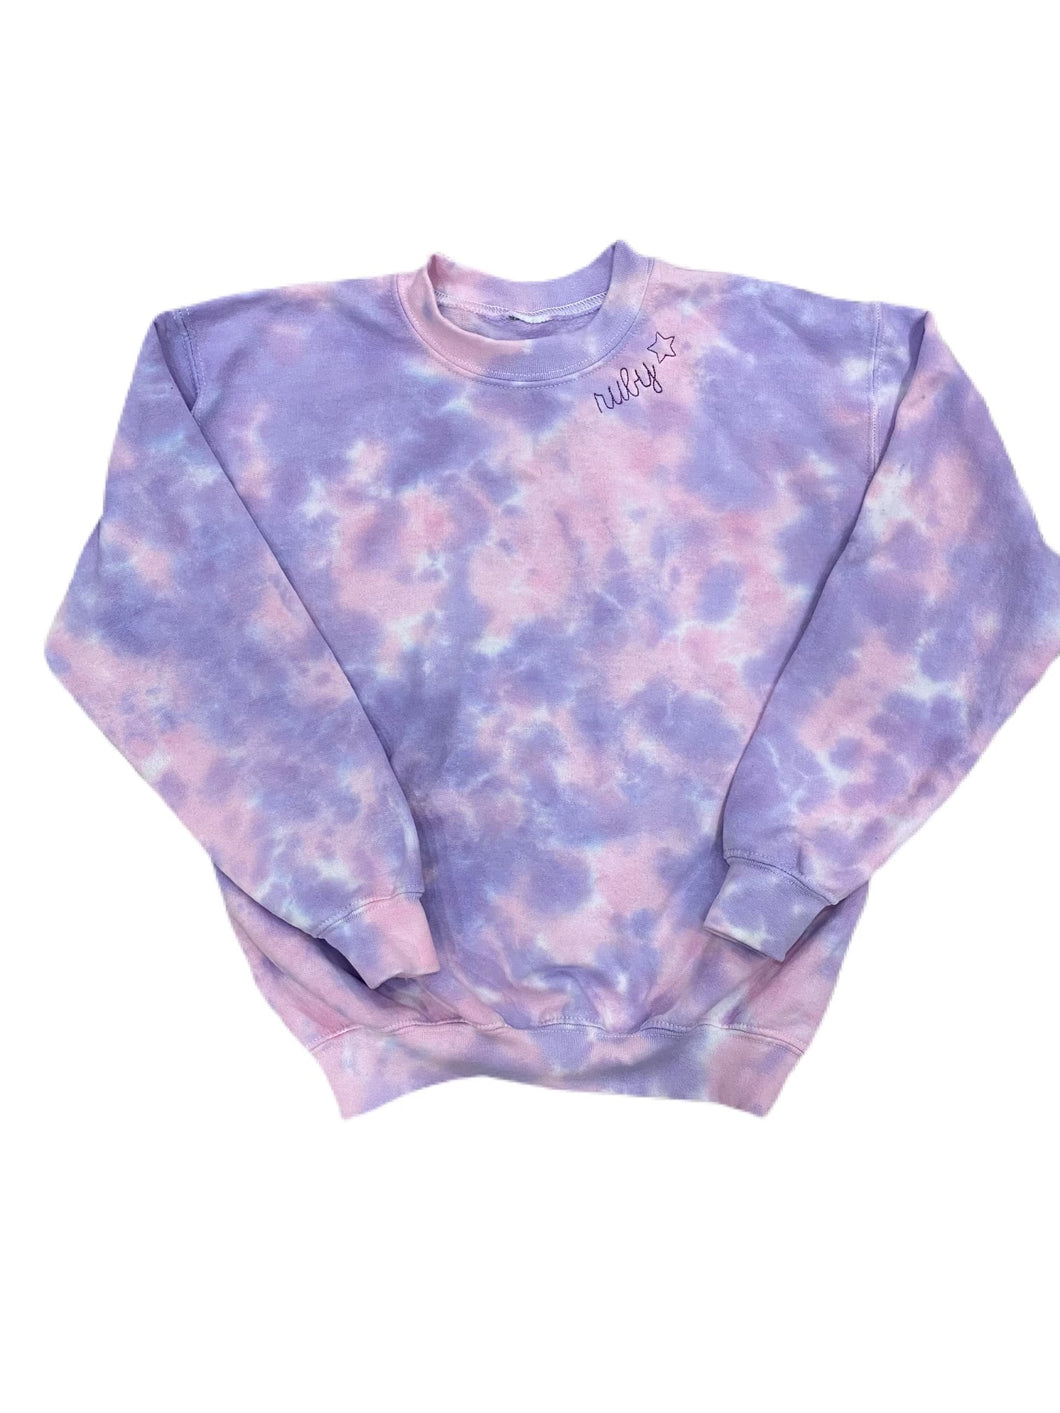 Toddlers / Kids' Embroidered & Tie Dye Crew Neck Sweatshirt